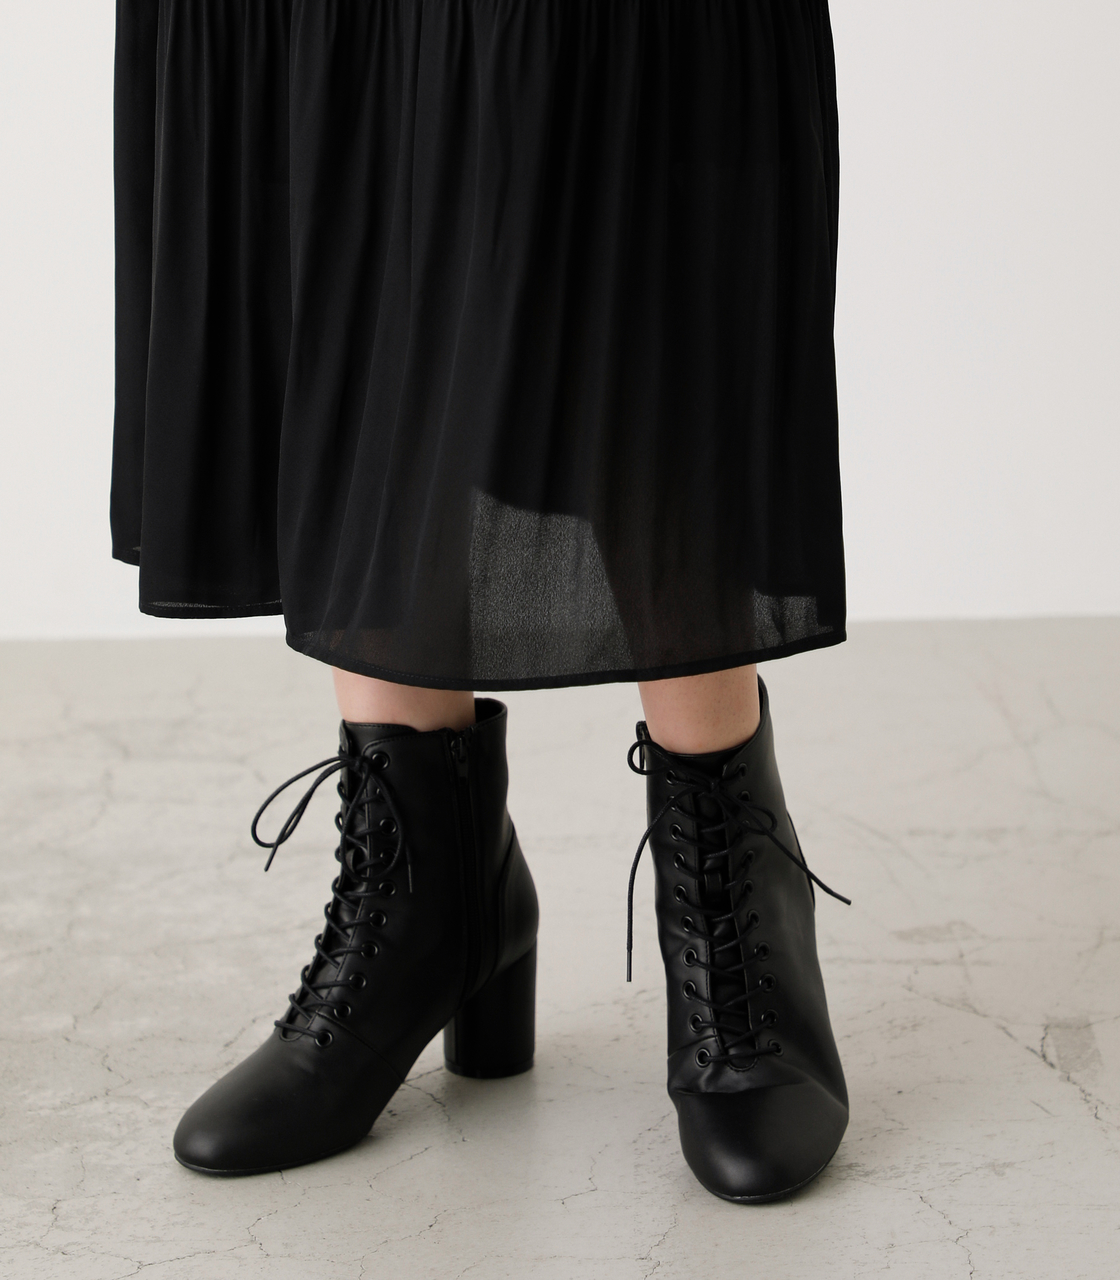 LACE UP HEEL BOOTS/レースアップヒールブーツ 詳細画像 BLK 8